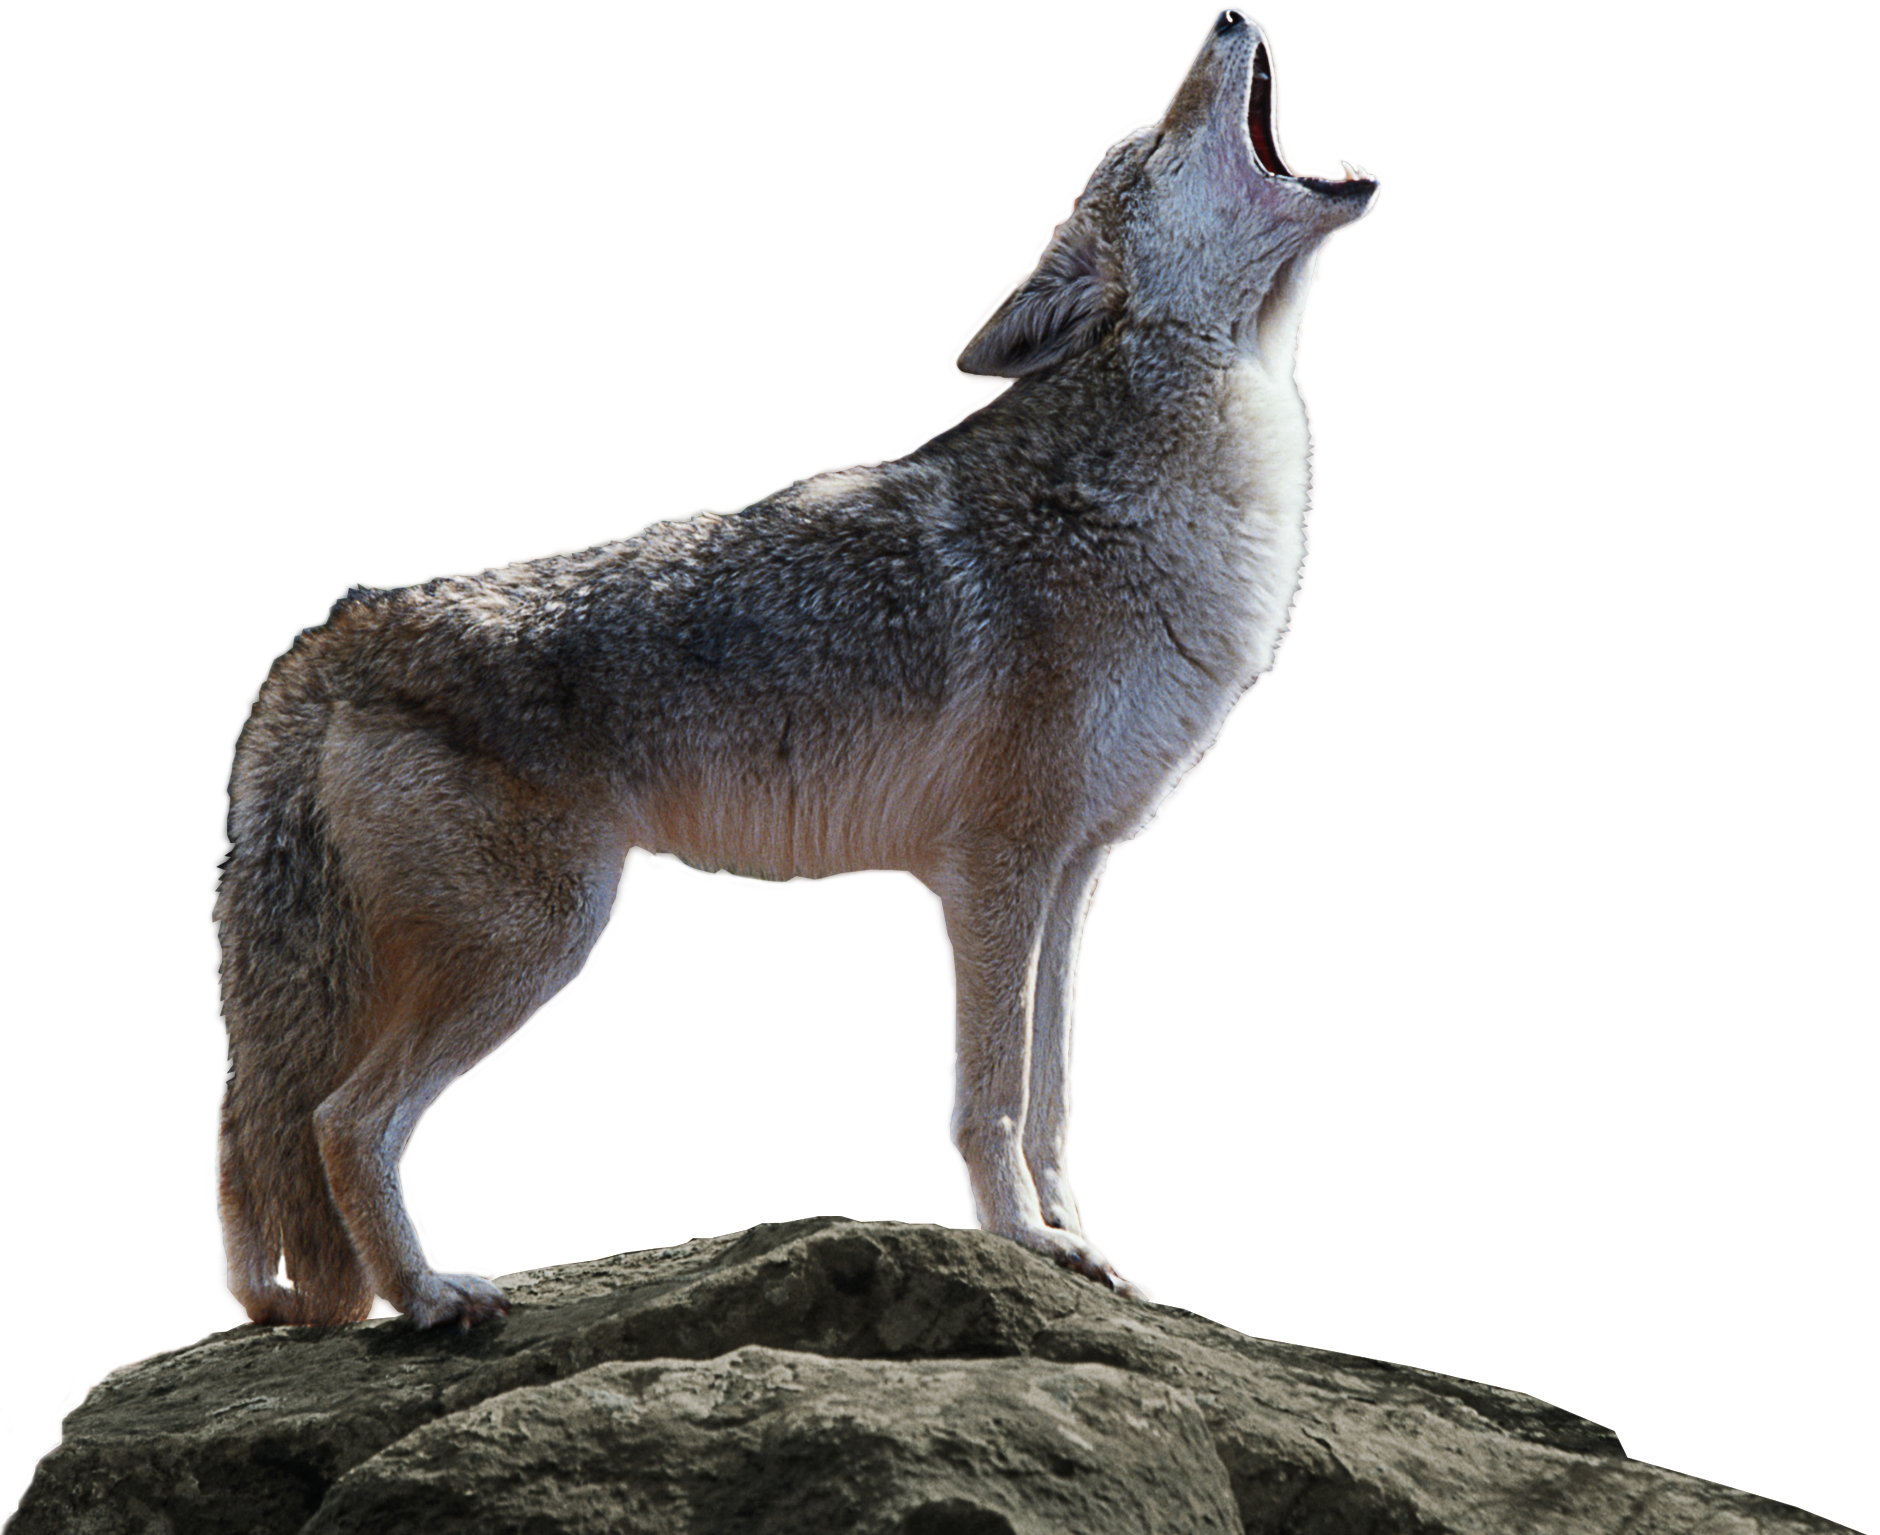 Coyote PNG Image Download.